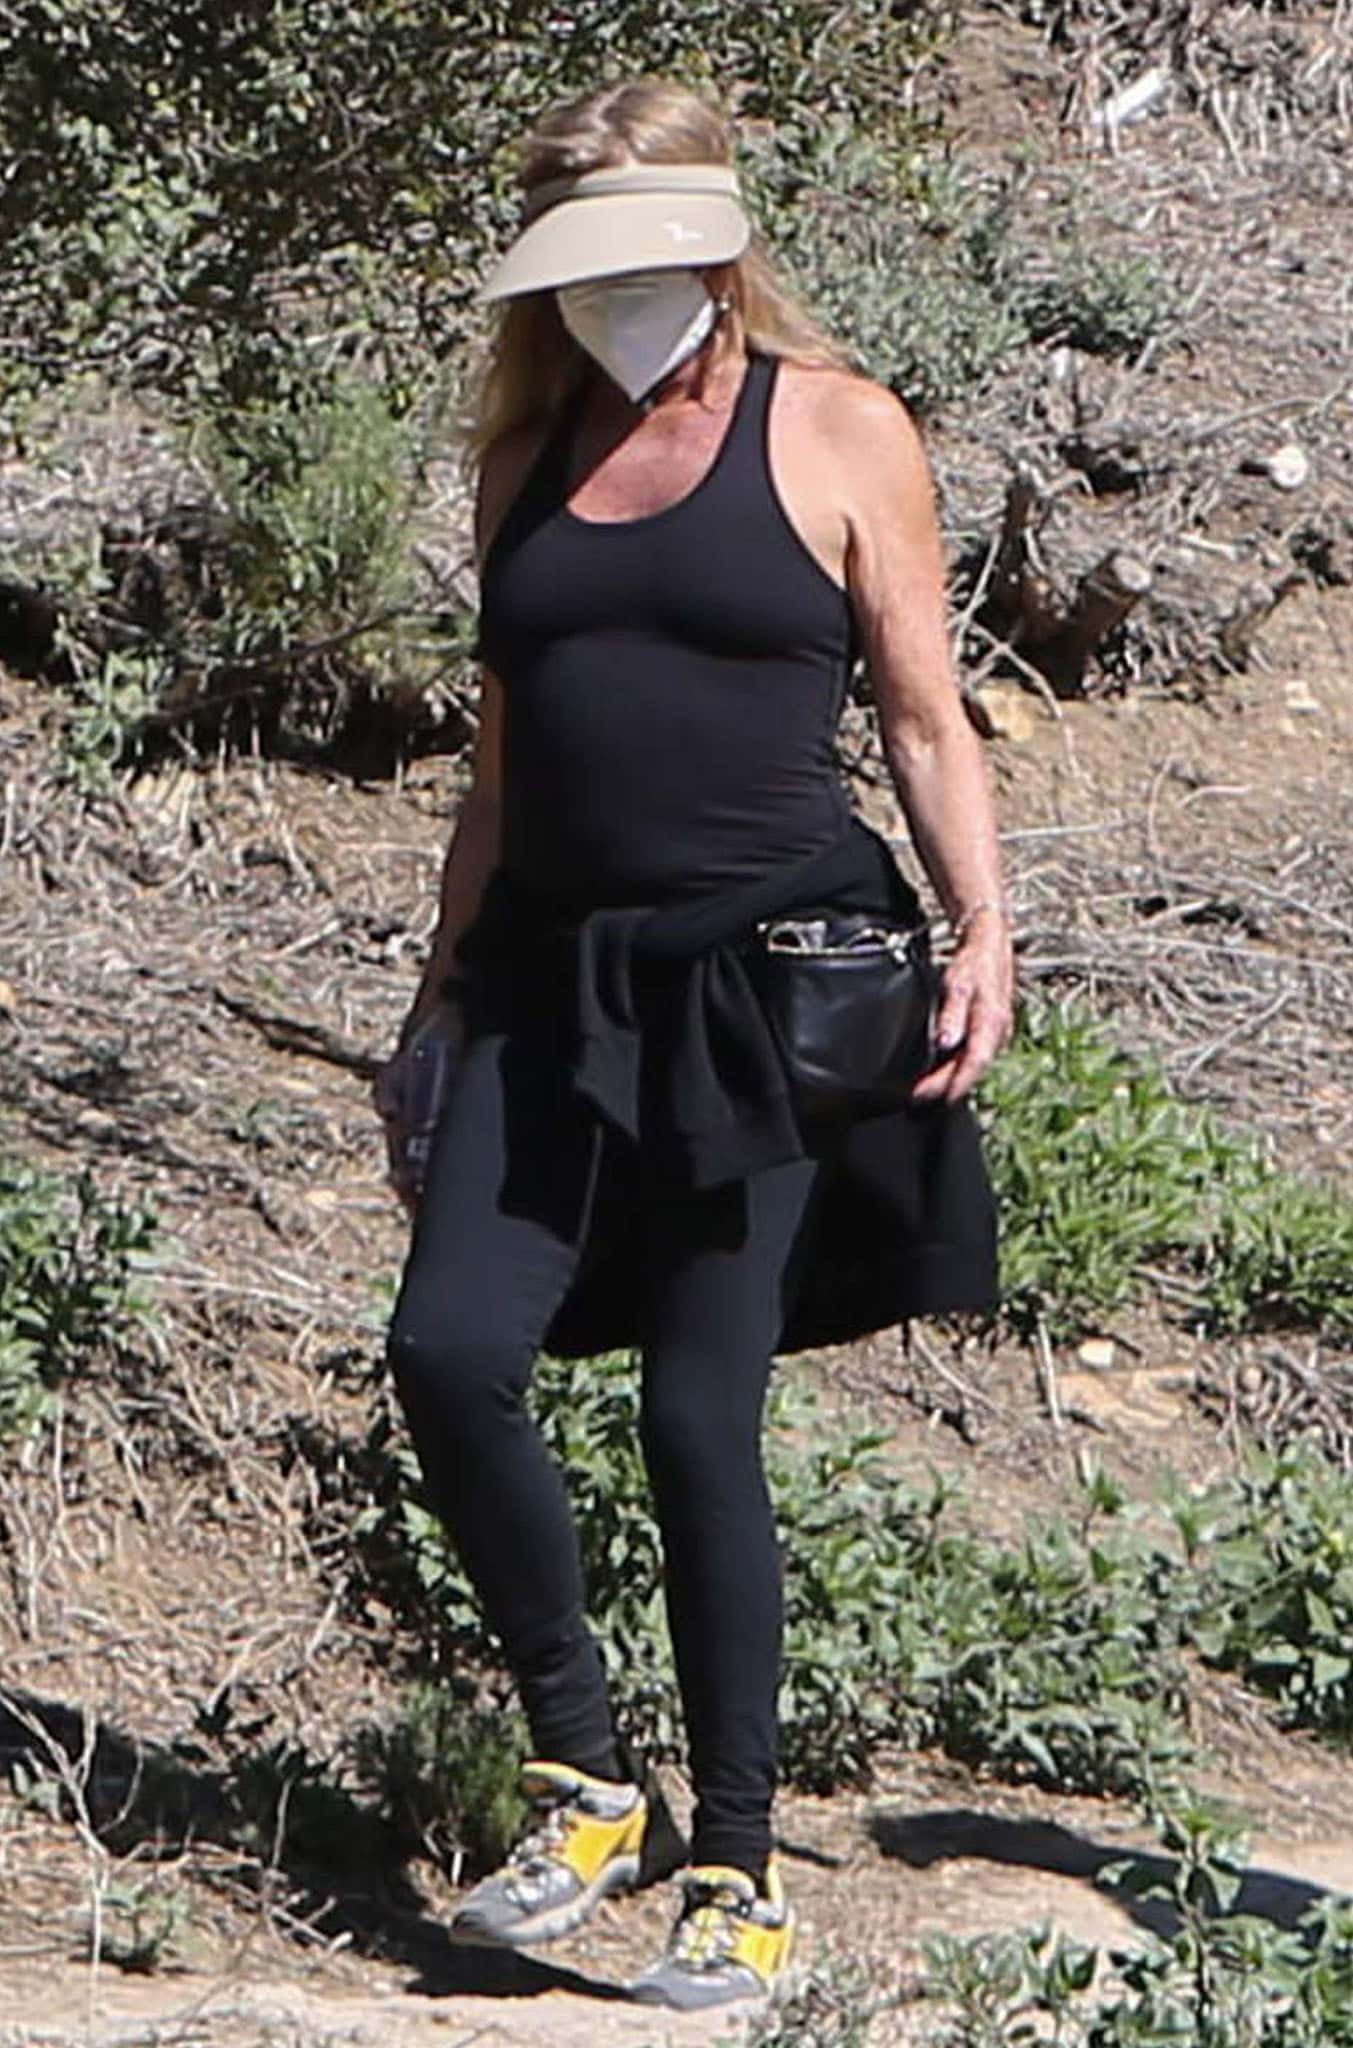 Goldie Hawn wears a tank top with leggings and gray-and-yellow shoes during a hiking excursion